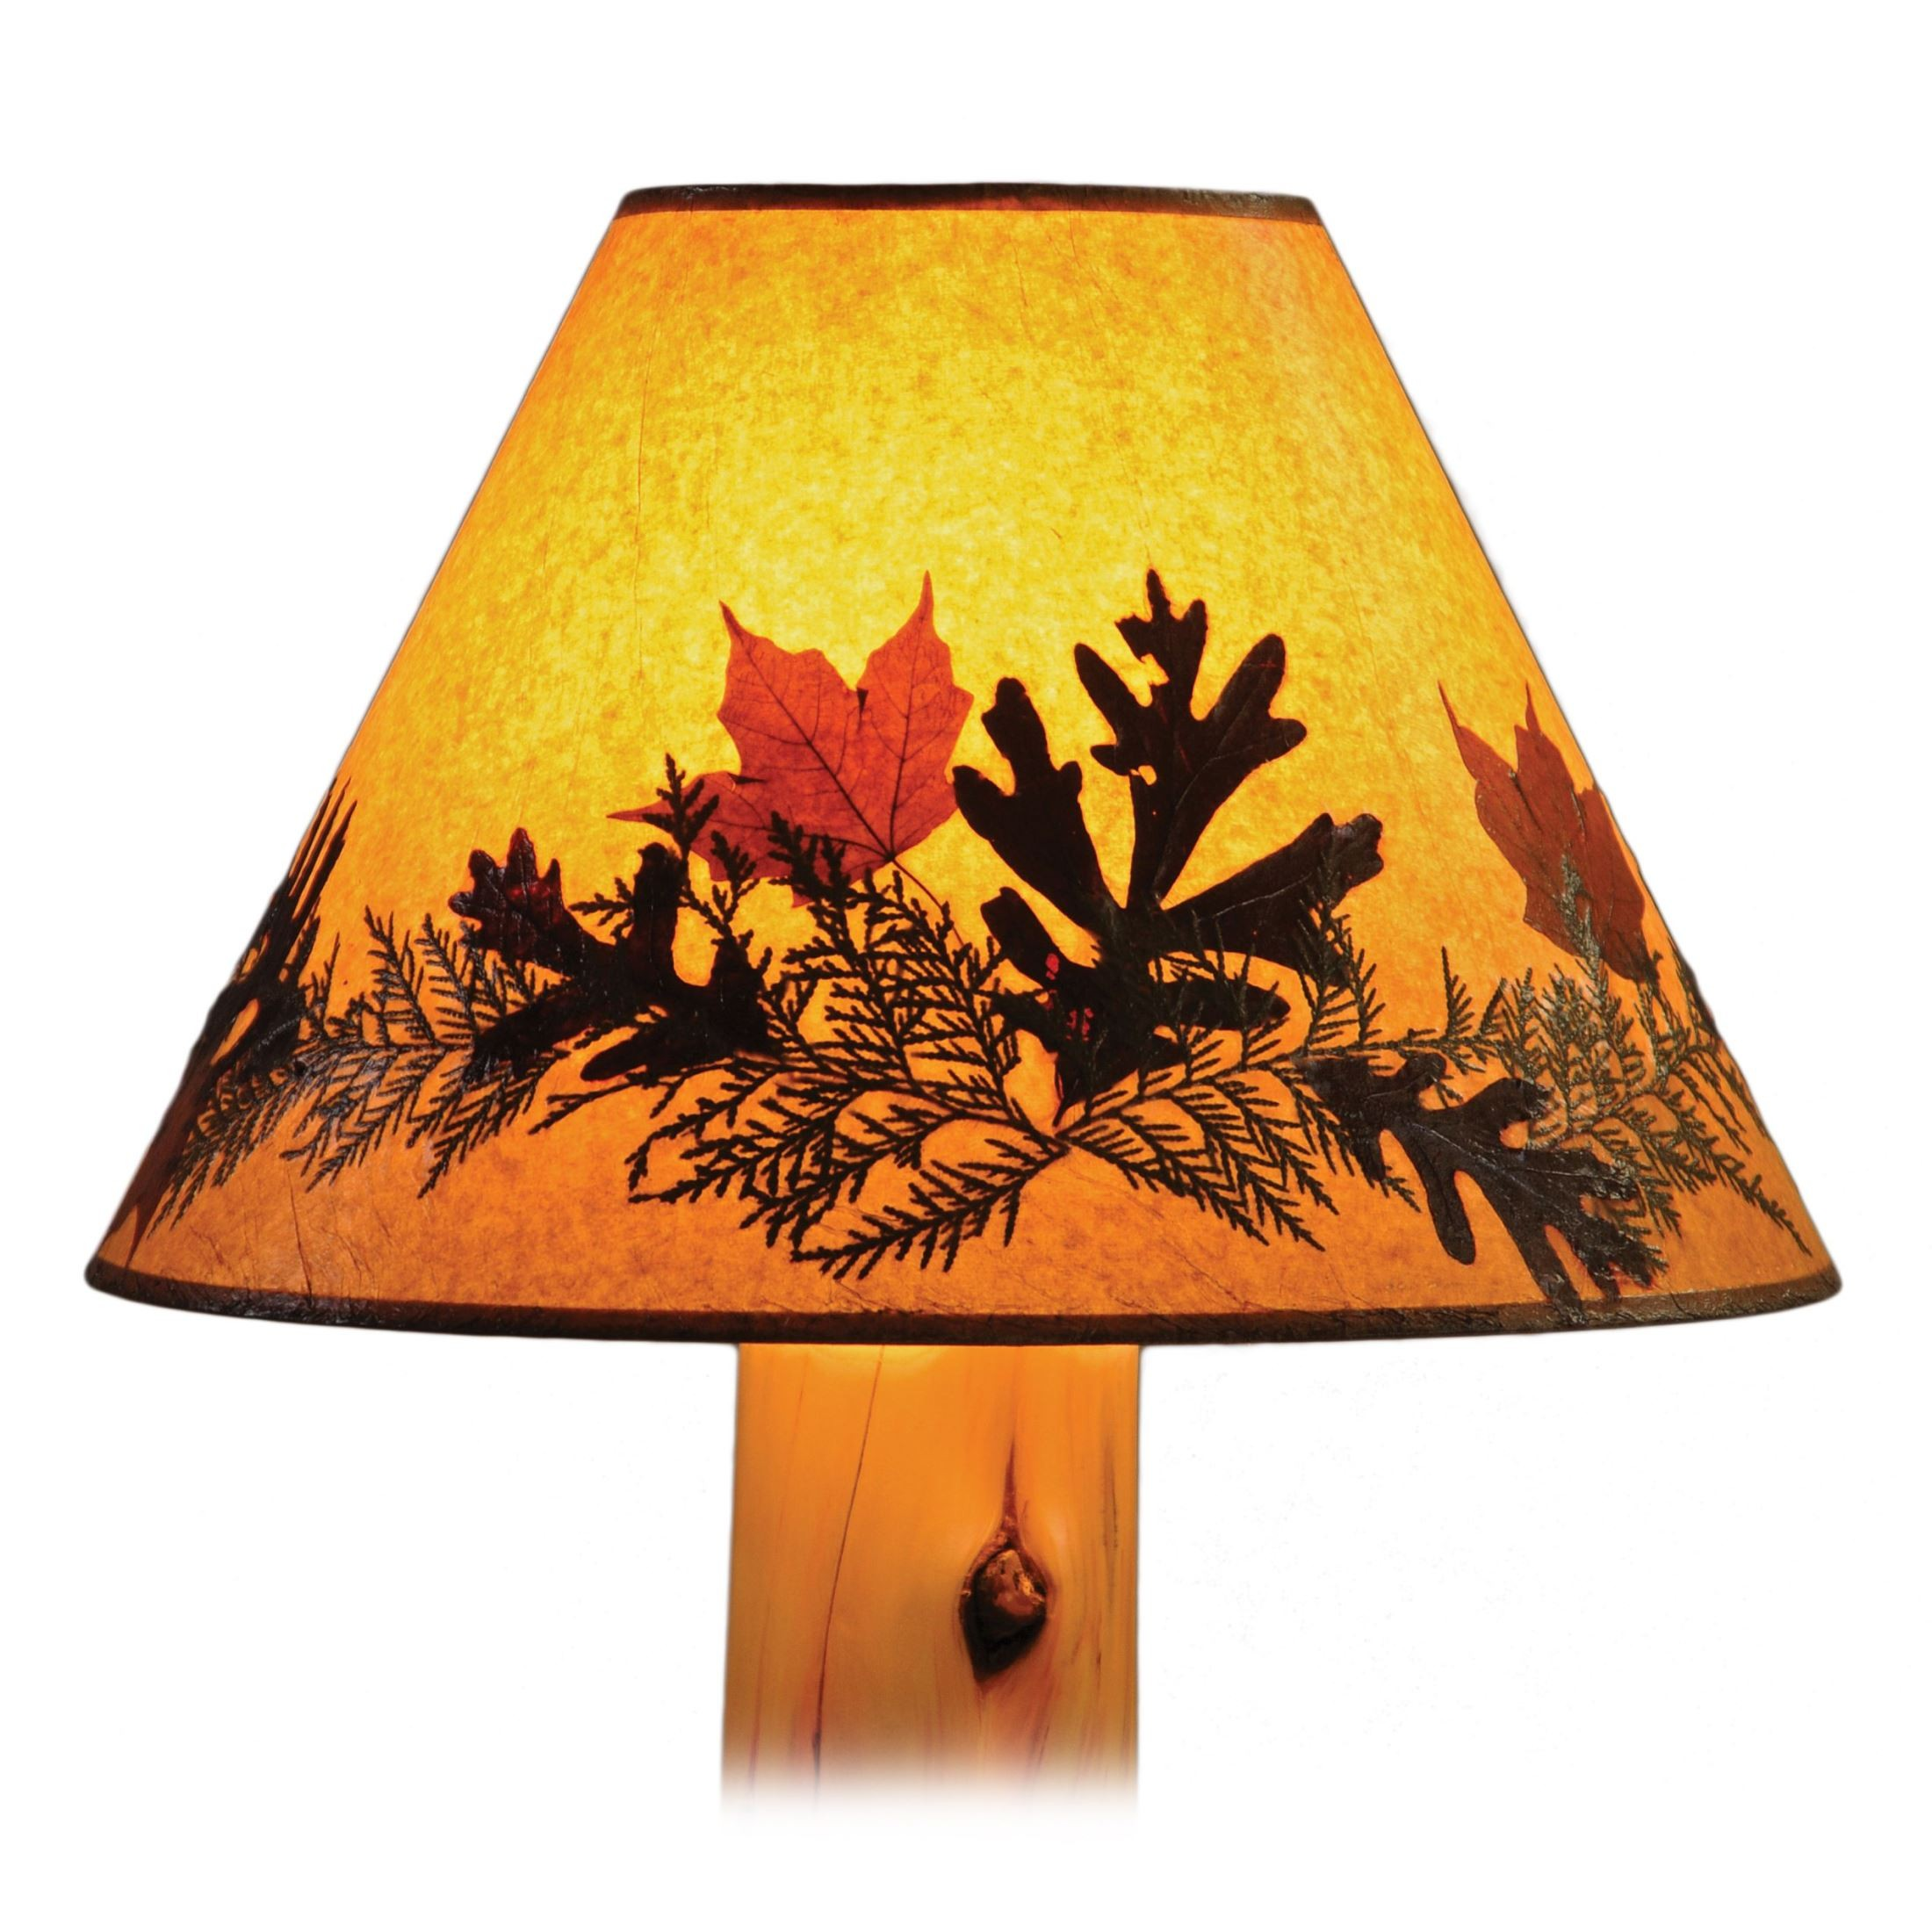 Foliage Extra Large Lamp Shade From Fireside Lodge 19245